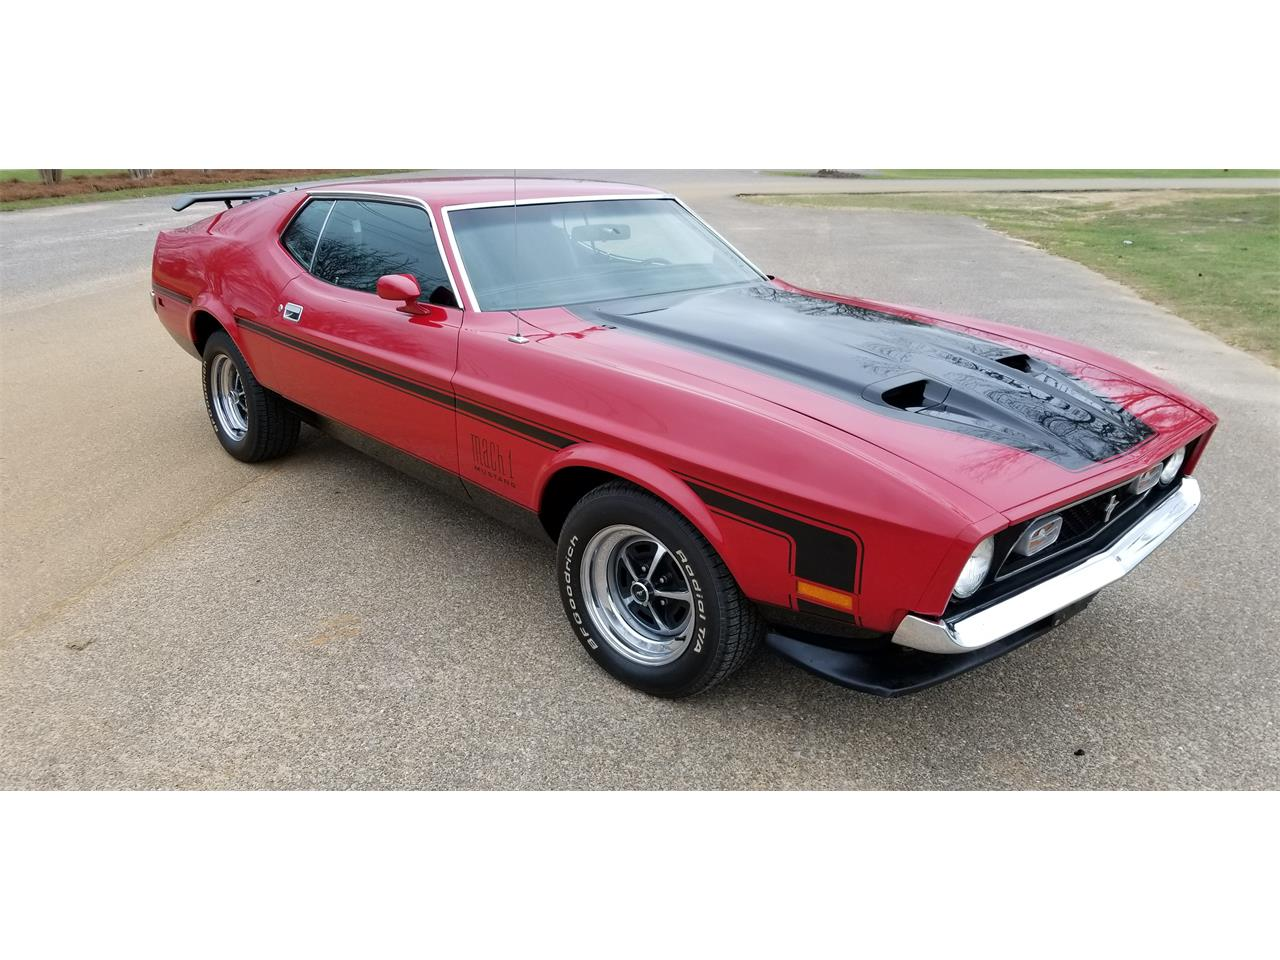 Large picture of 72 mustang mach 1 plb9